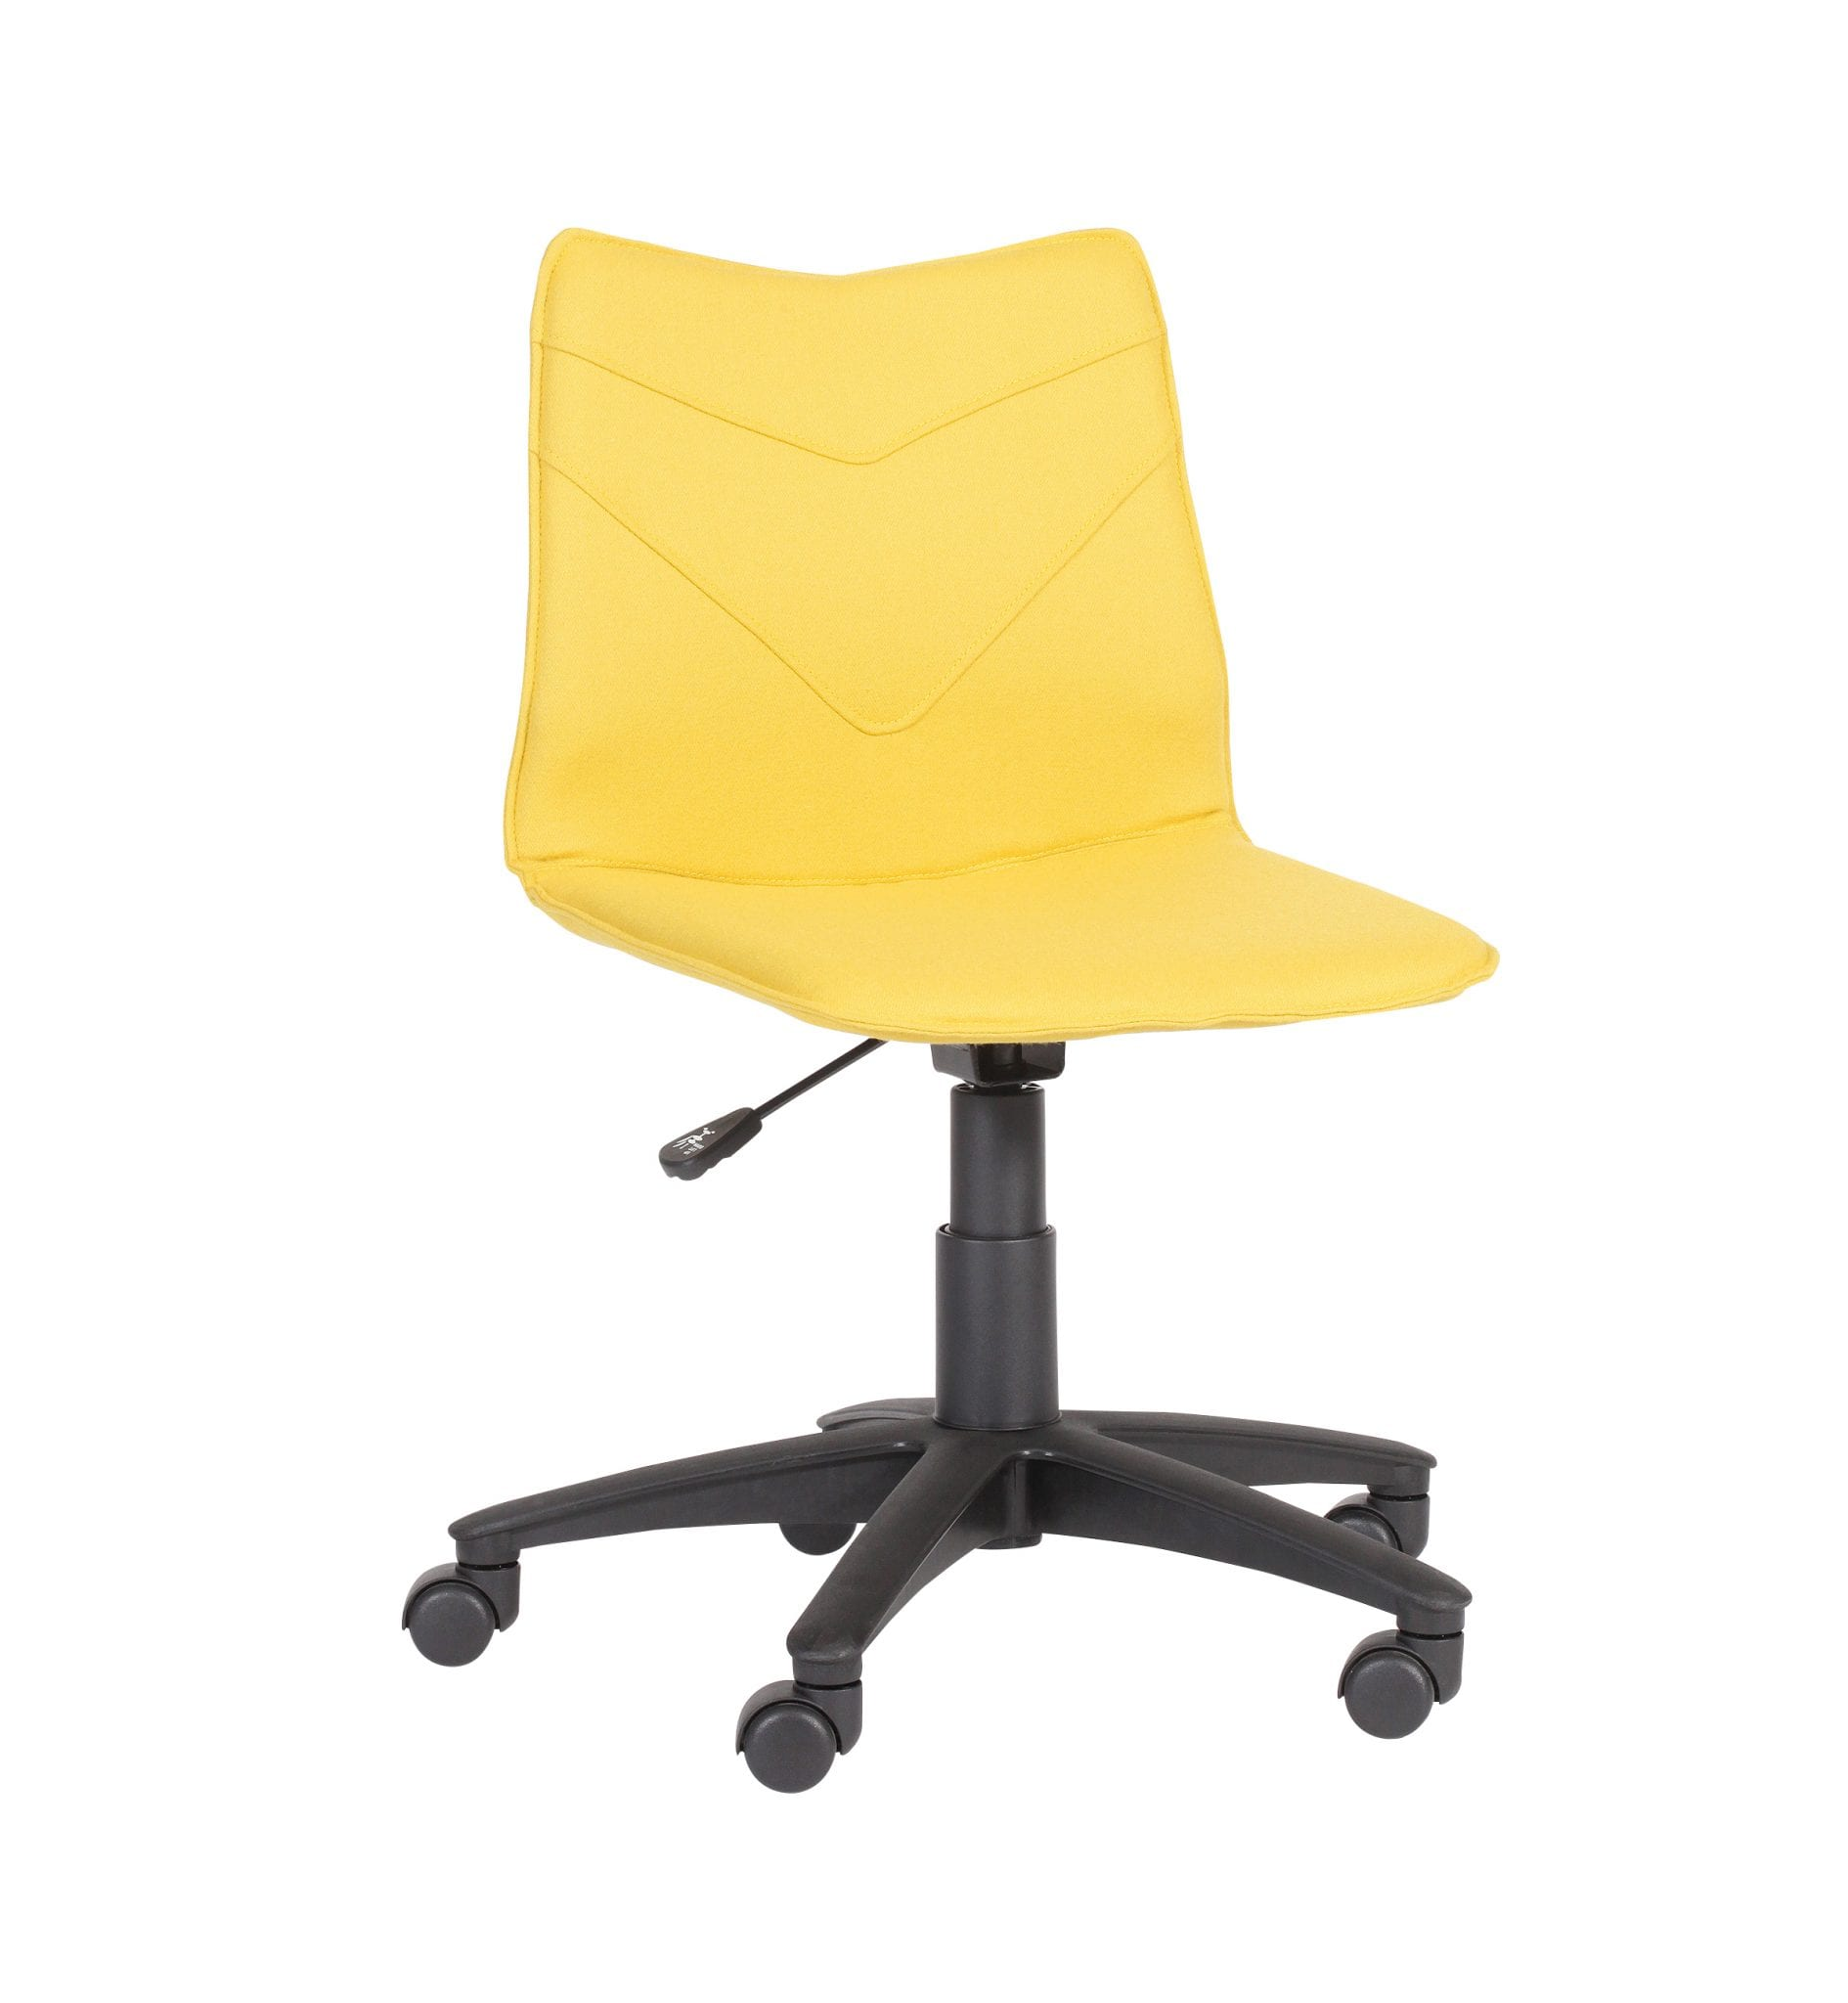 TV14 – TuVee range - Stylish chair with spider base, castors and gas lift – from Summit Chairs